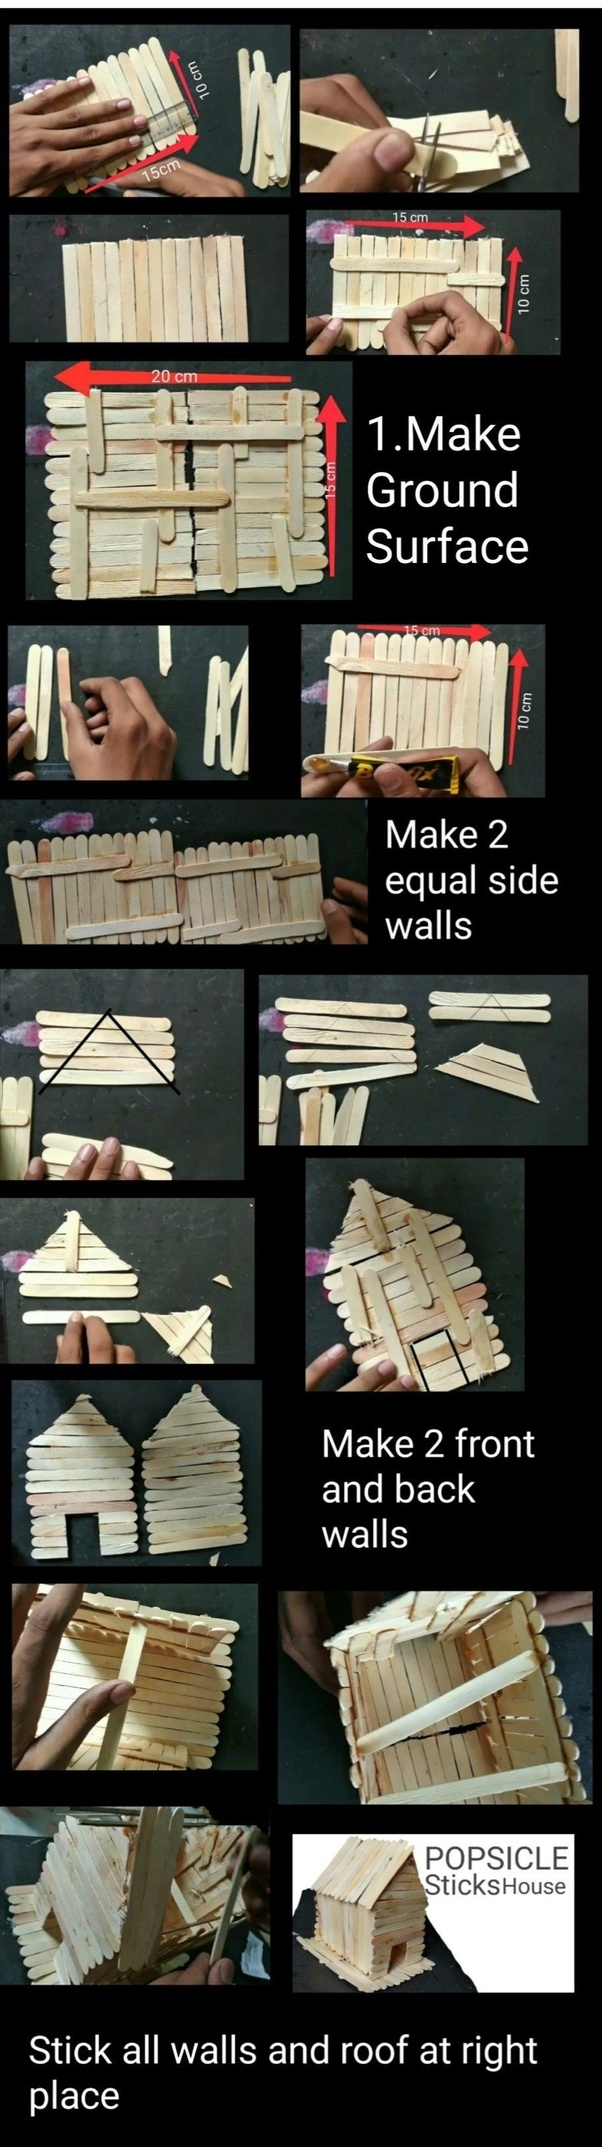 How to make a house out of popsicle sticks - Quora